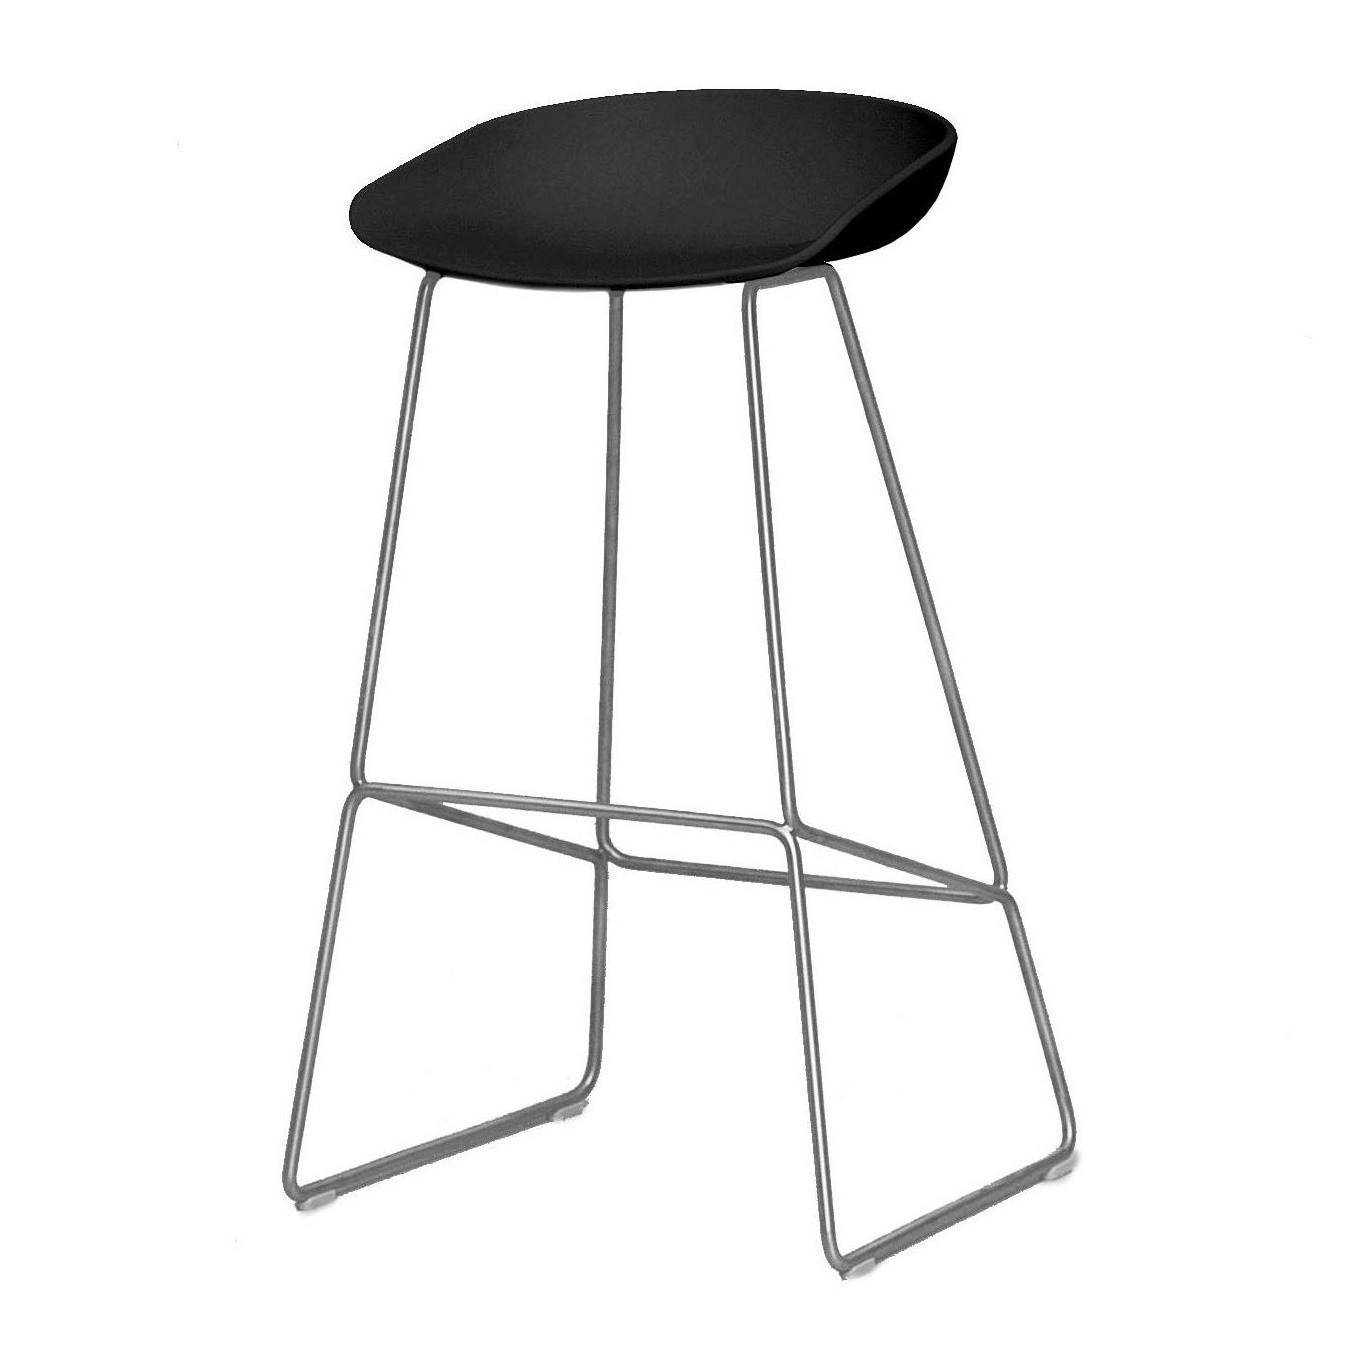 Hay about a stool aas38 bar stool 75cm ambientedirect for Hay about a stool replica